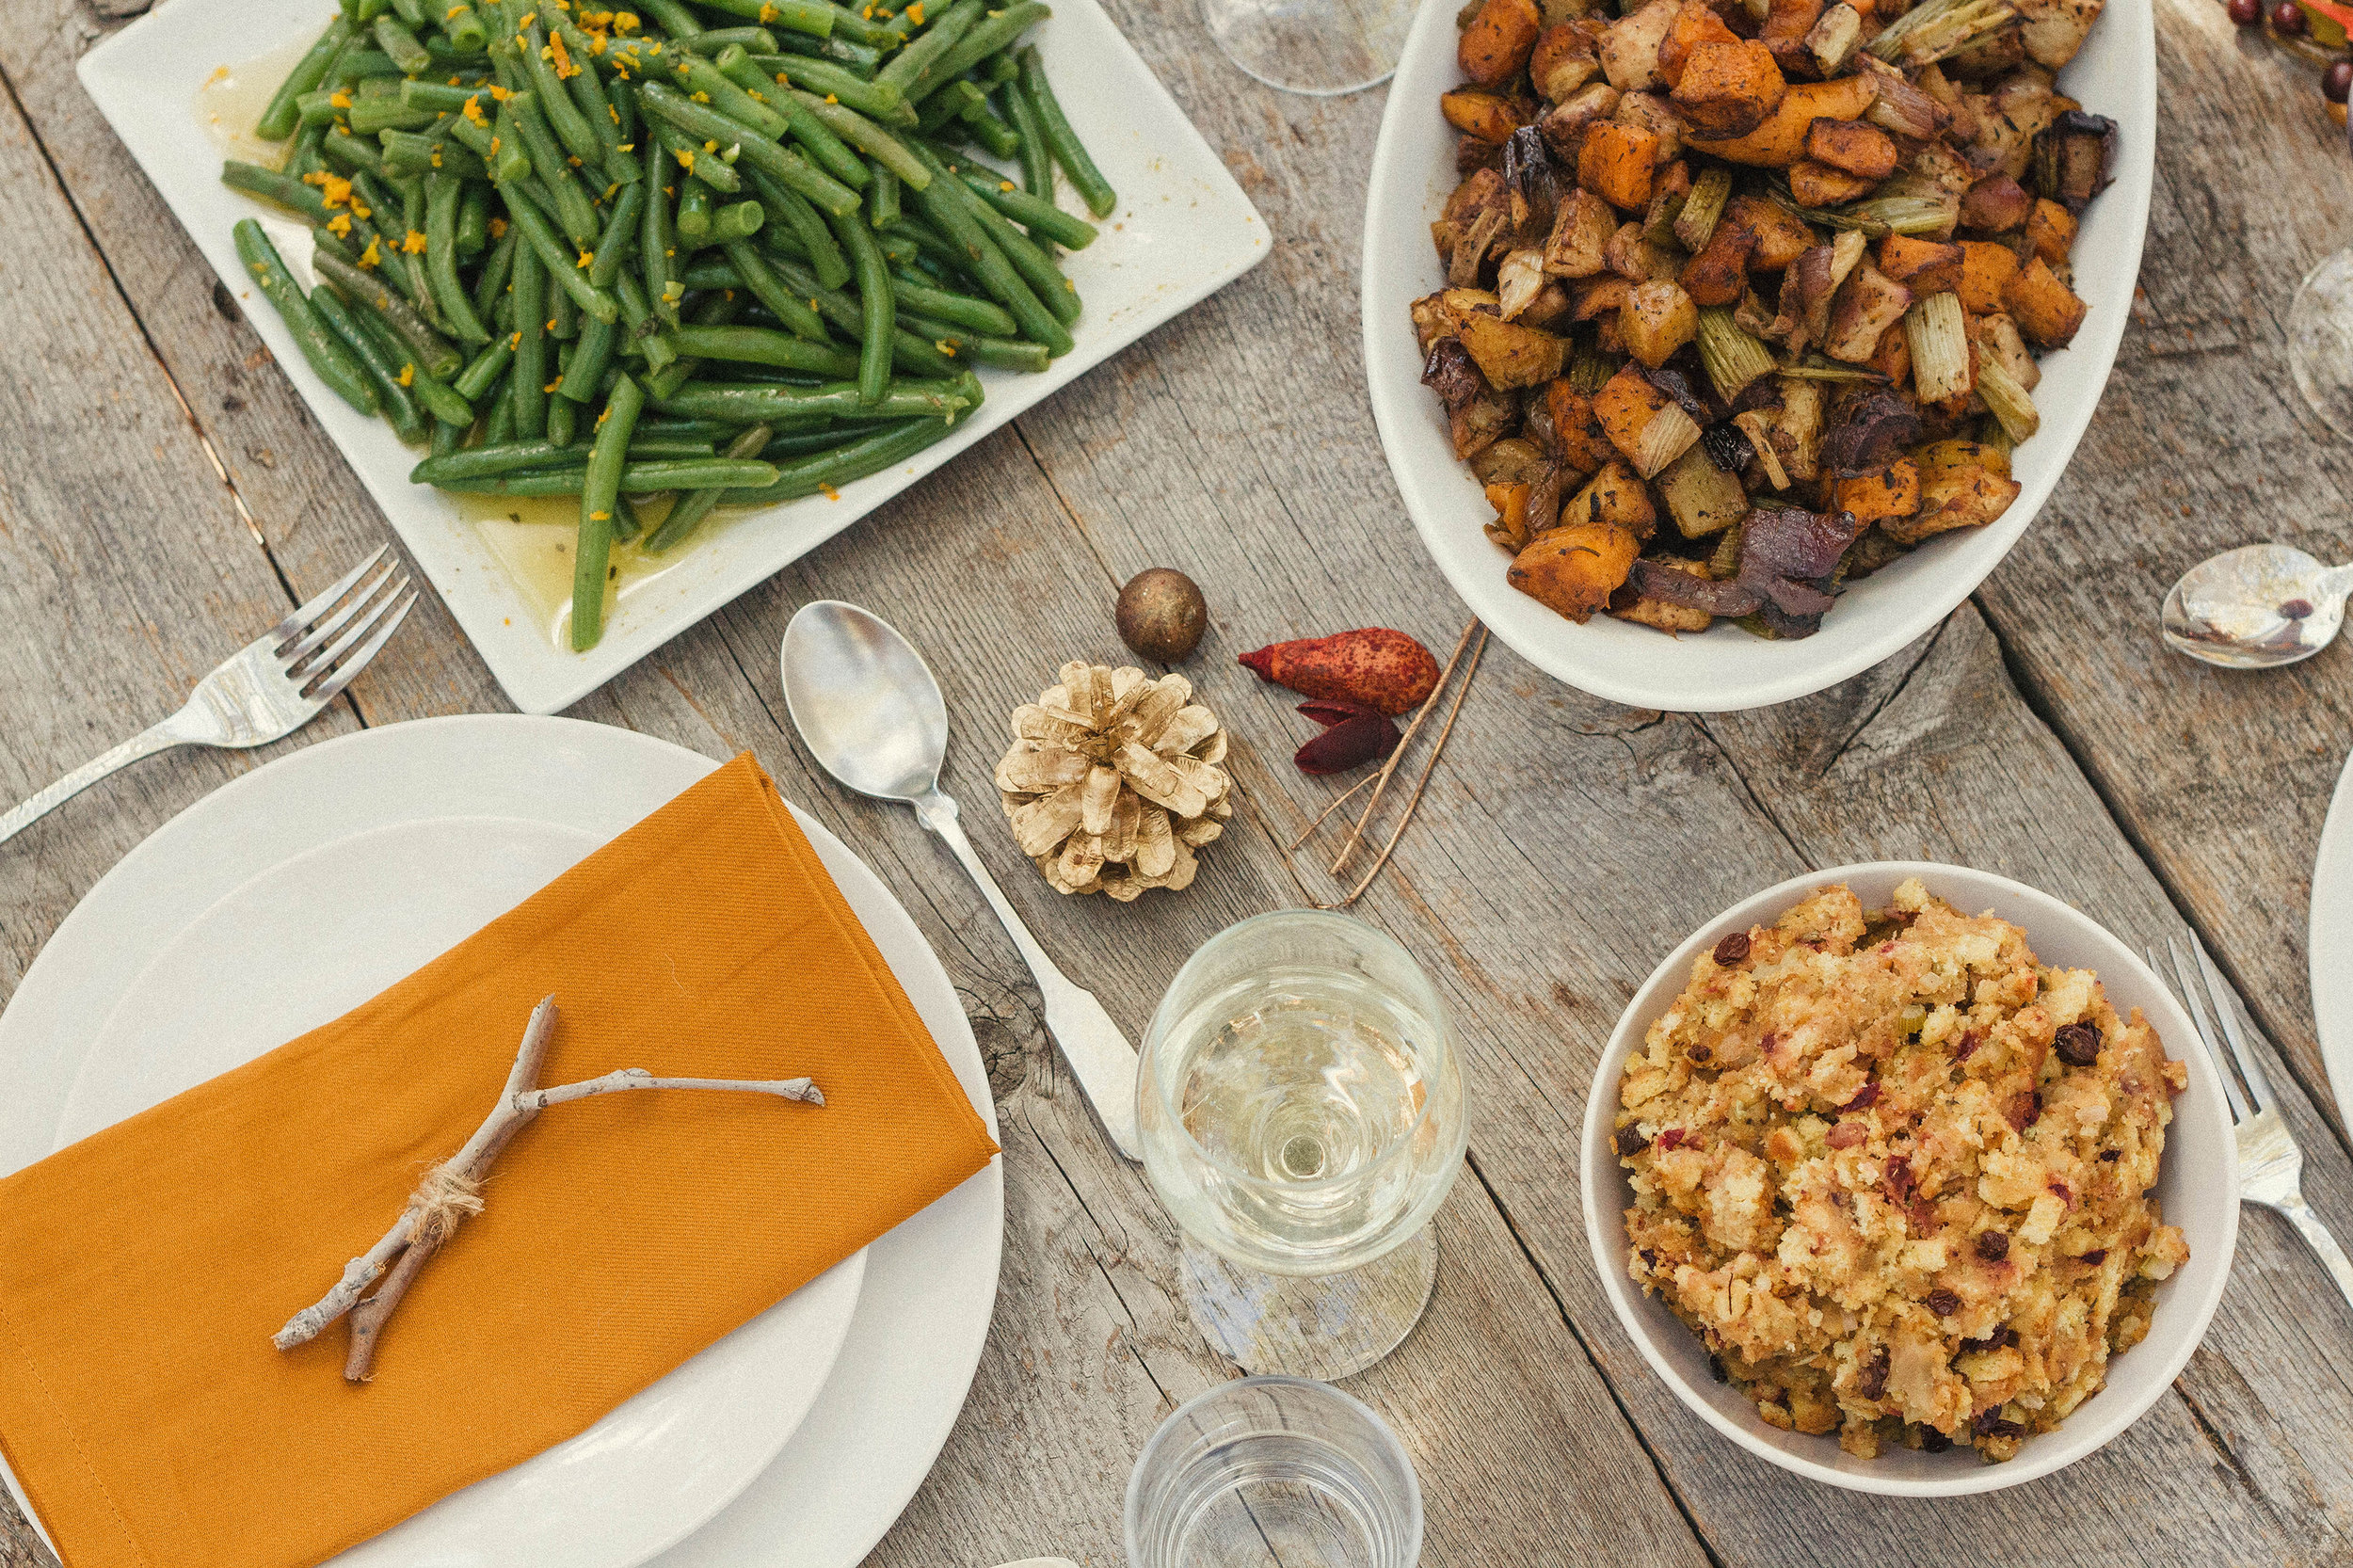 holiday meal side dishes.jpg